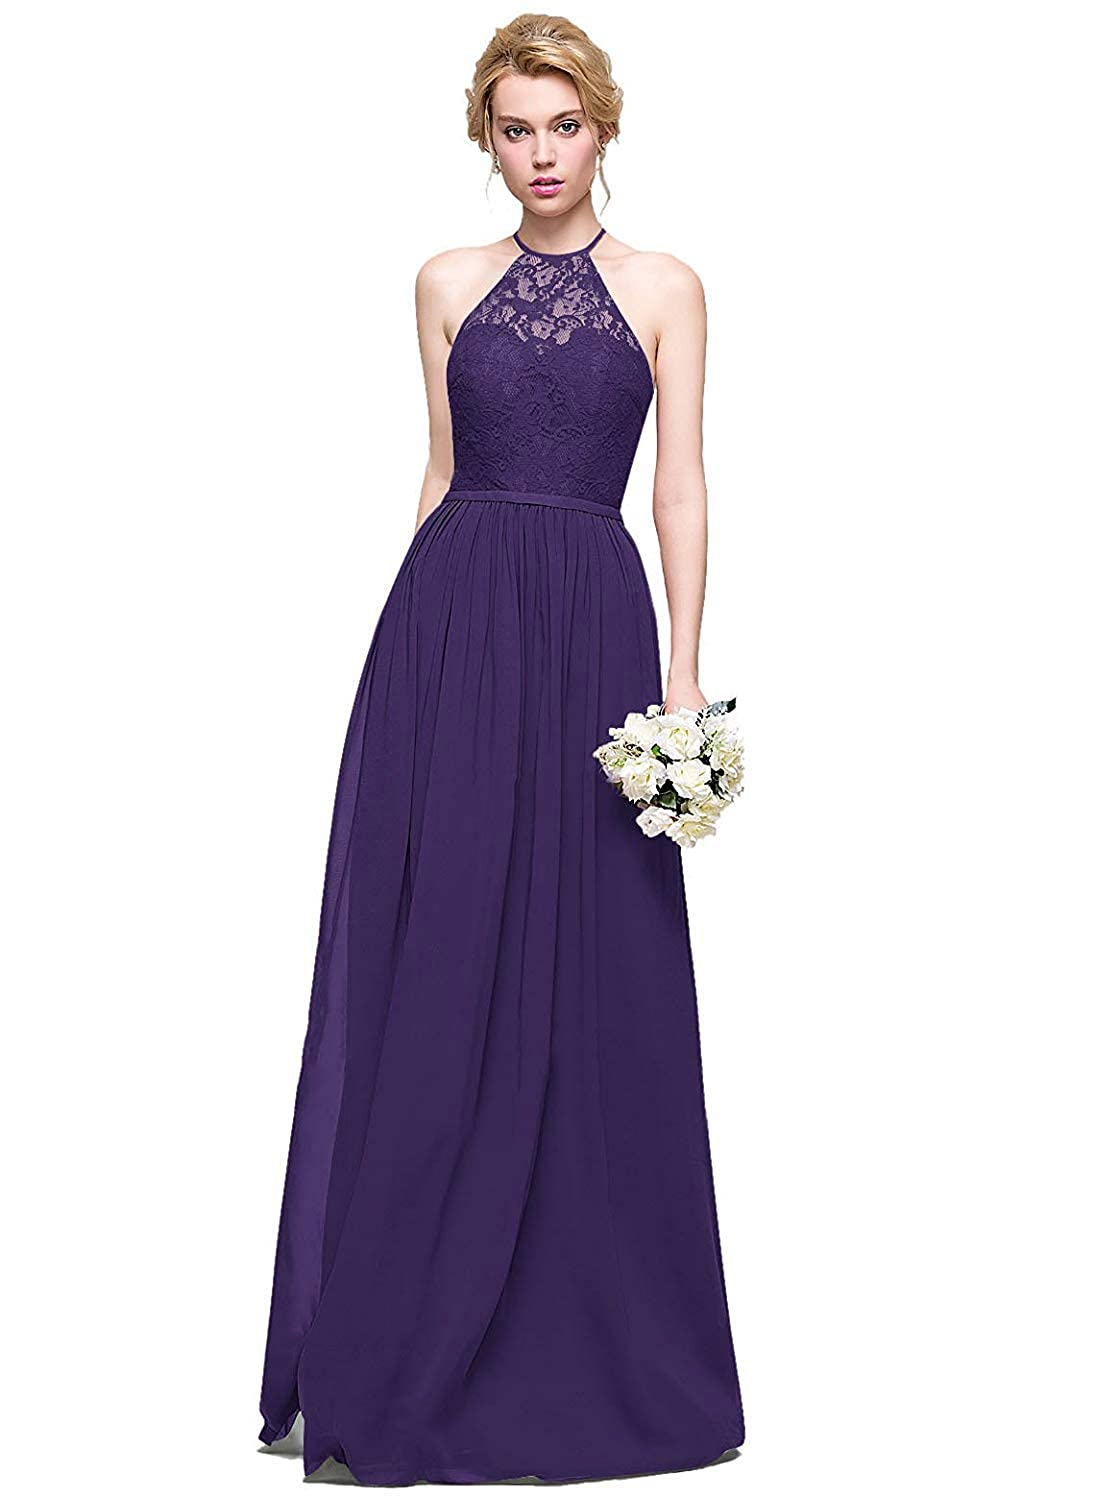 Dark Purple Halter Lace Sweetheart Neck Bridesmaid Dresses Long Prom Evening Gown